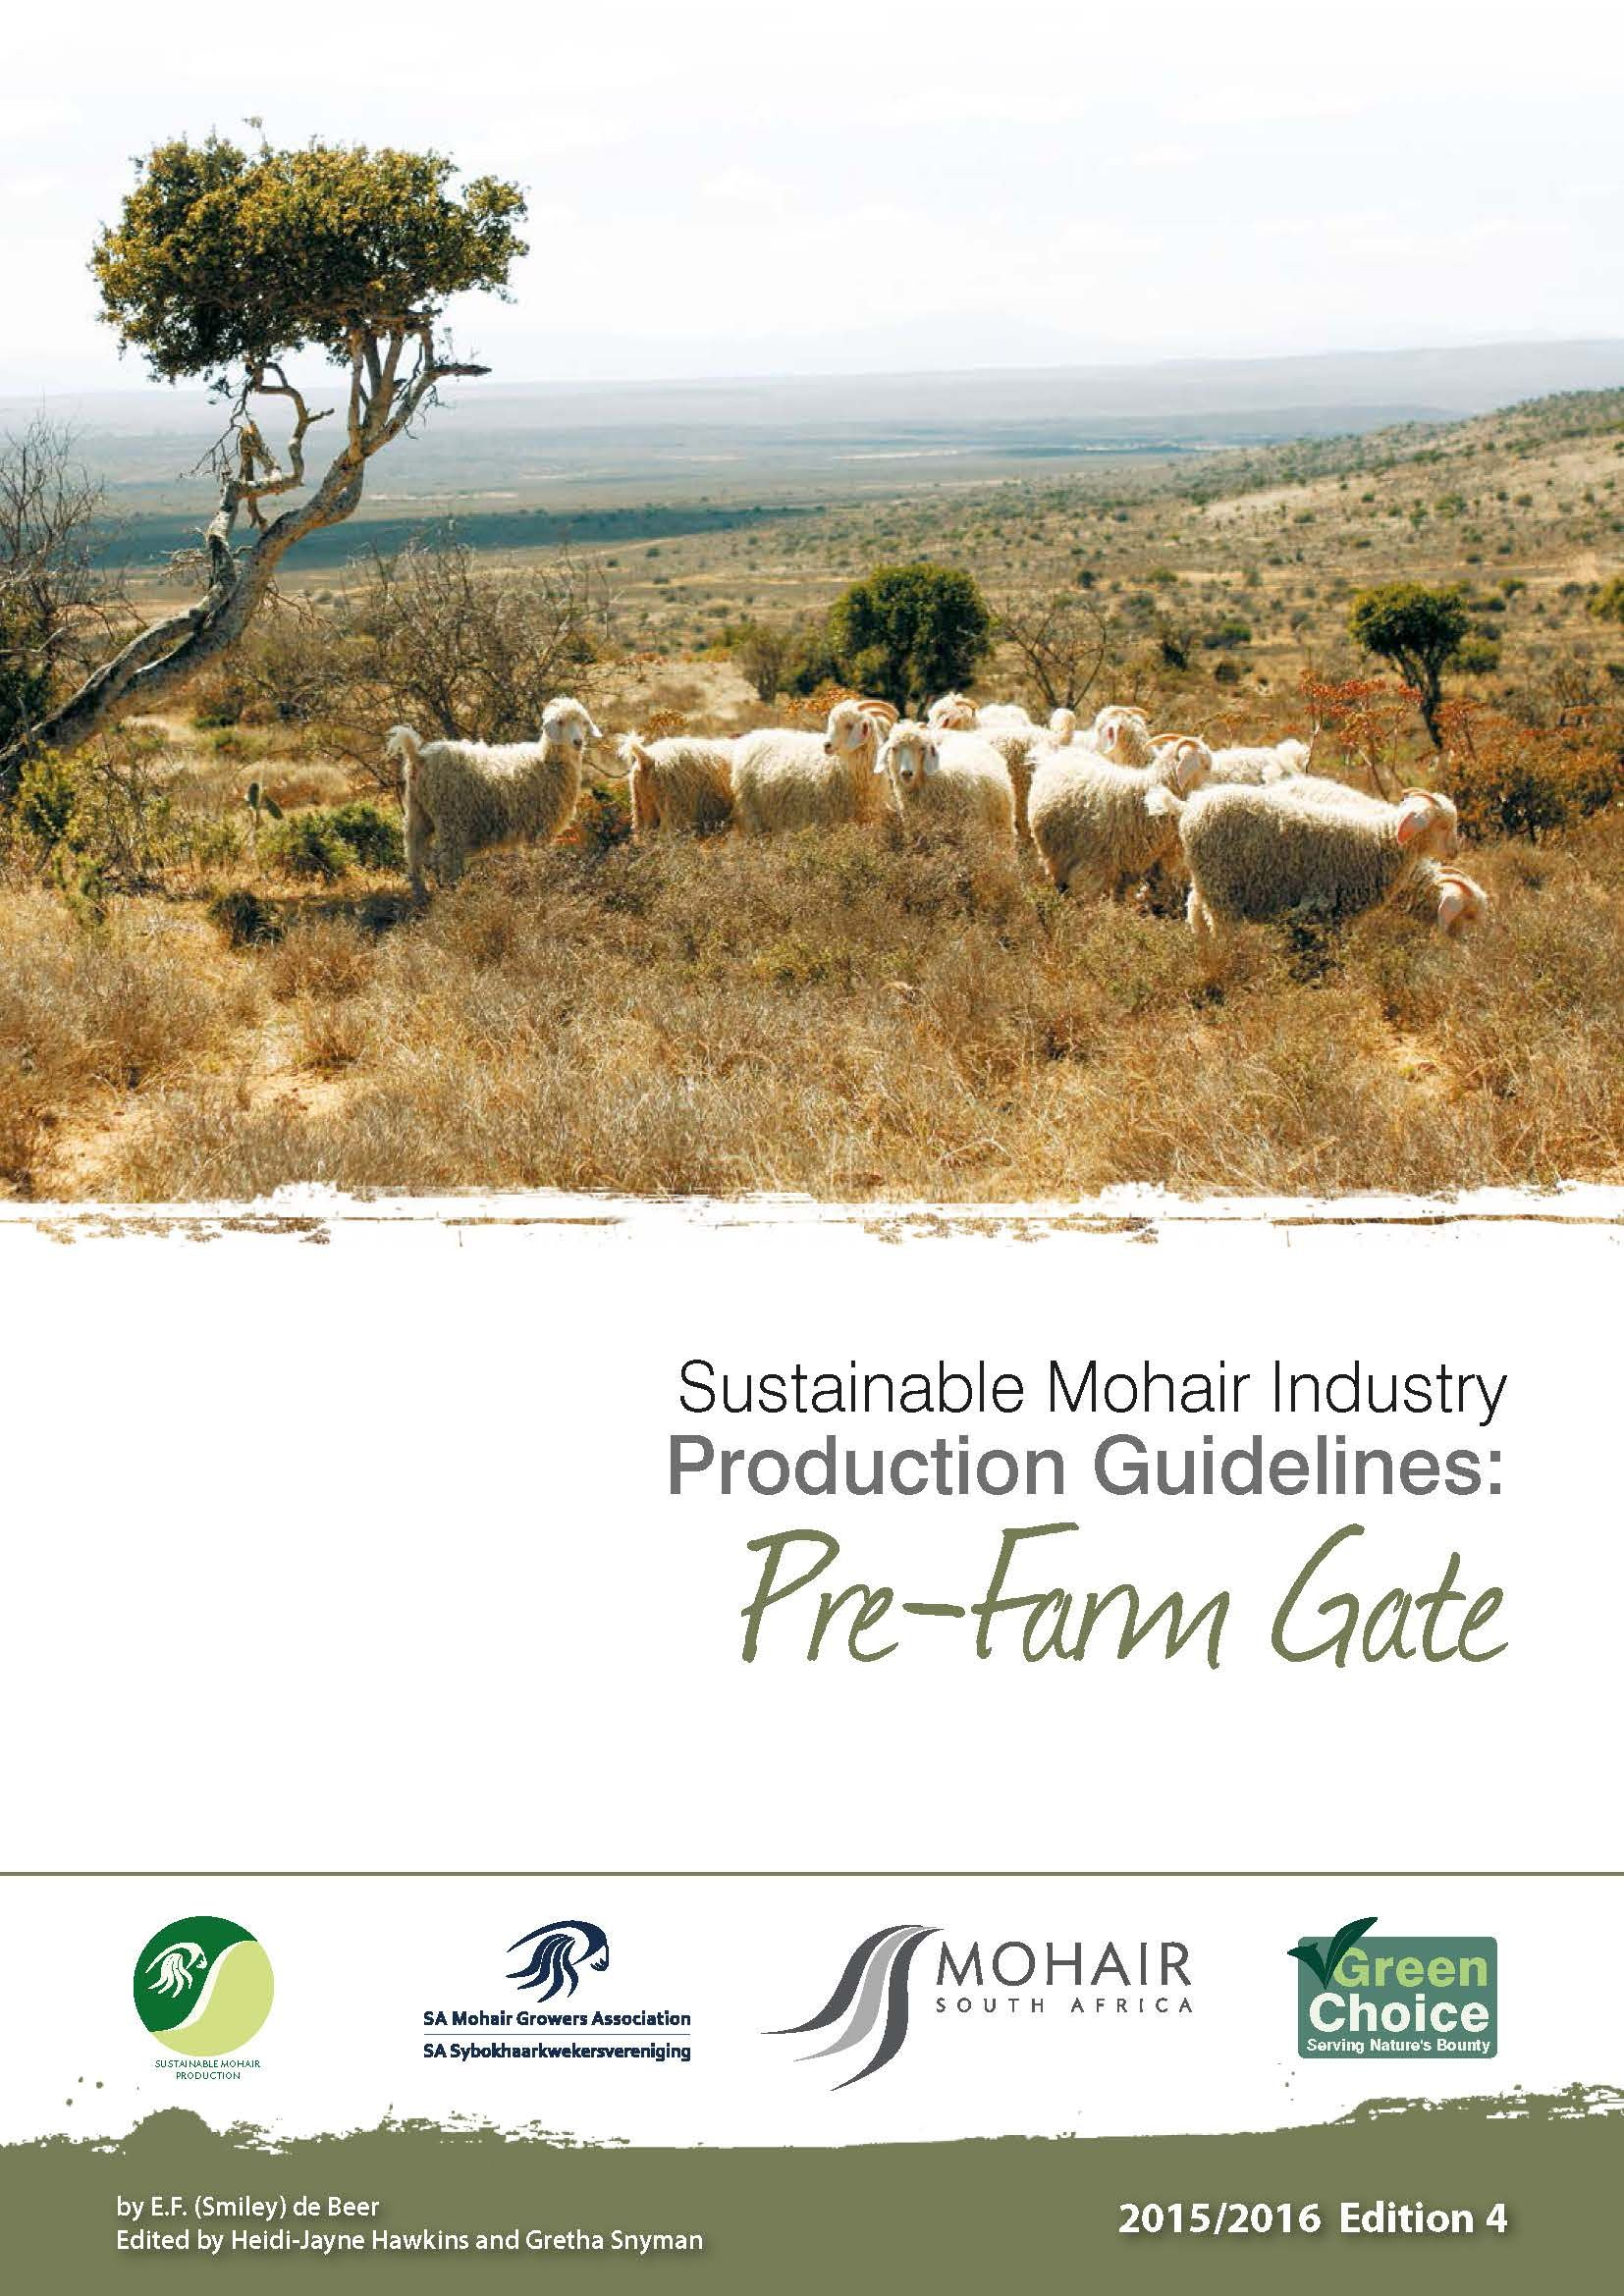 MSA Sustainable Mohair Production Guidelines 2015-2016